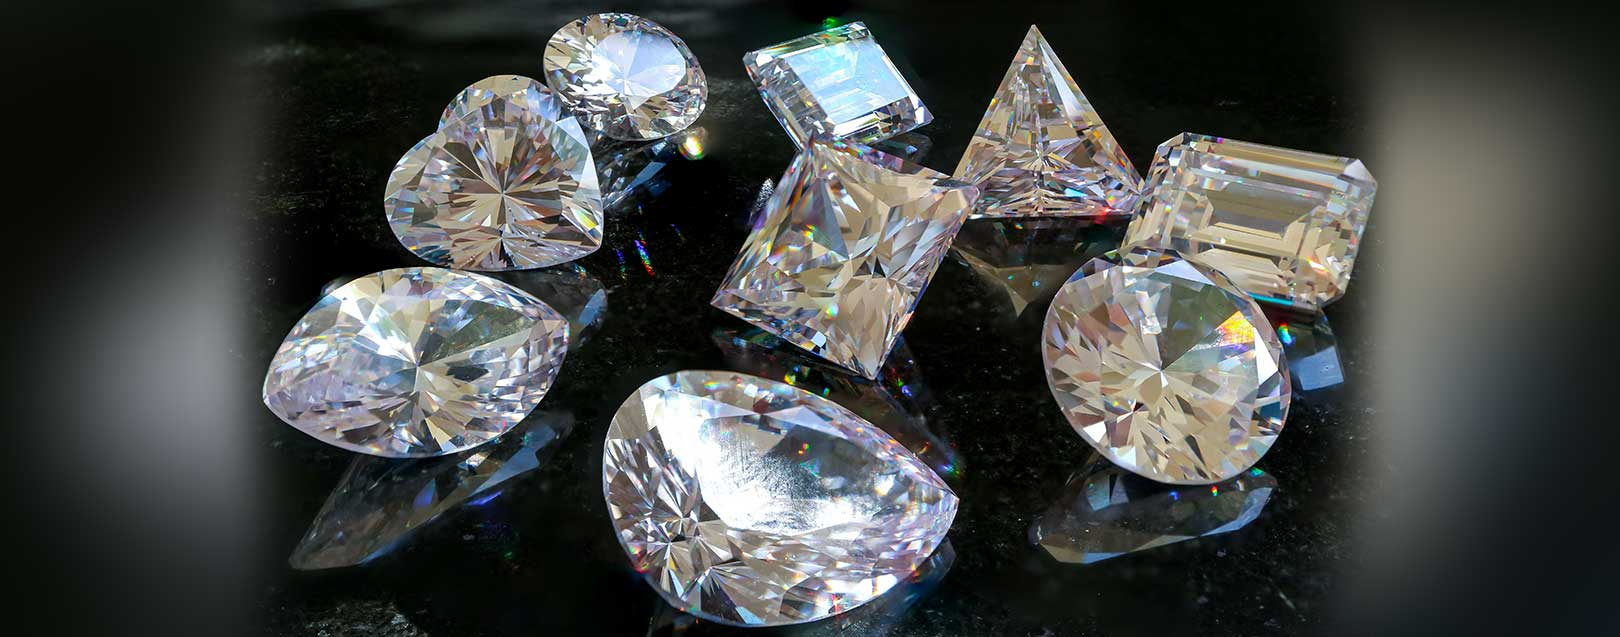 Customs exempts import duty on cut and polished diamonds to authorised agencies and offices